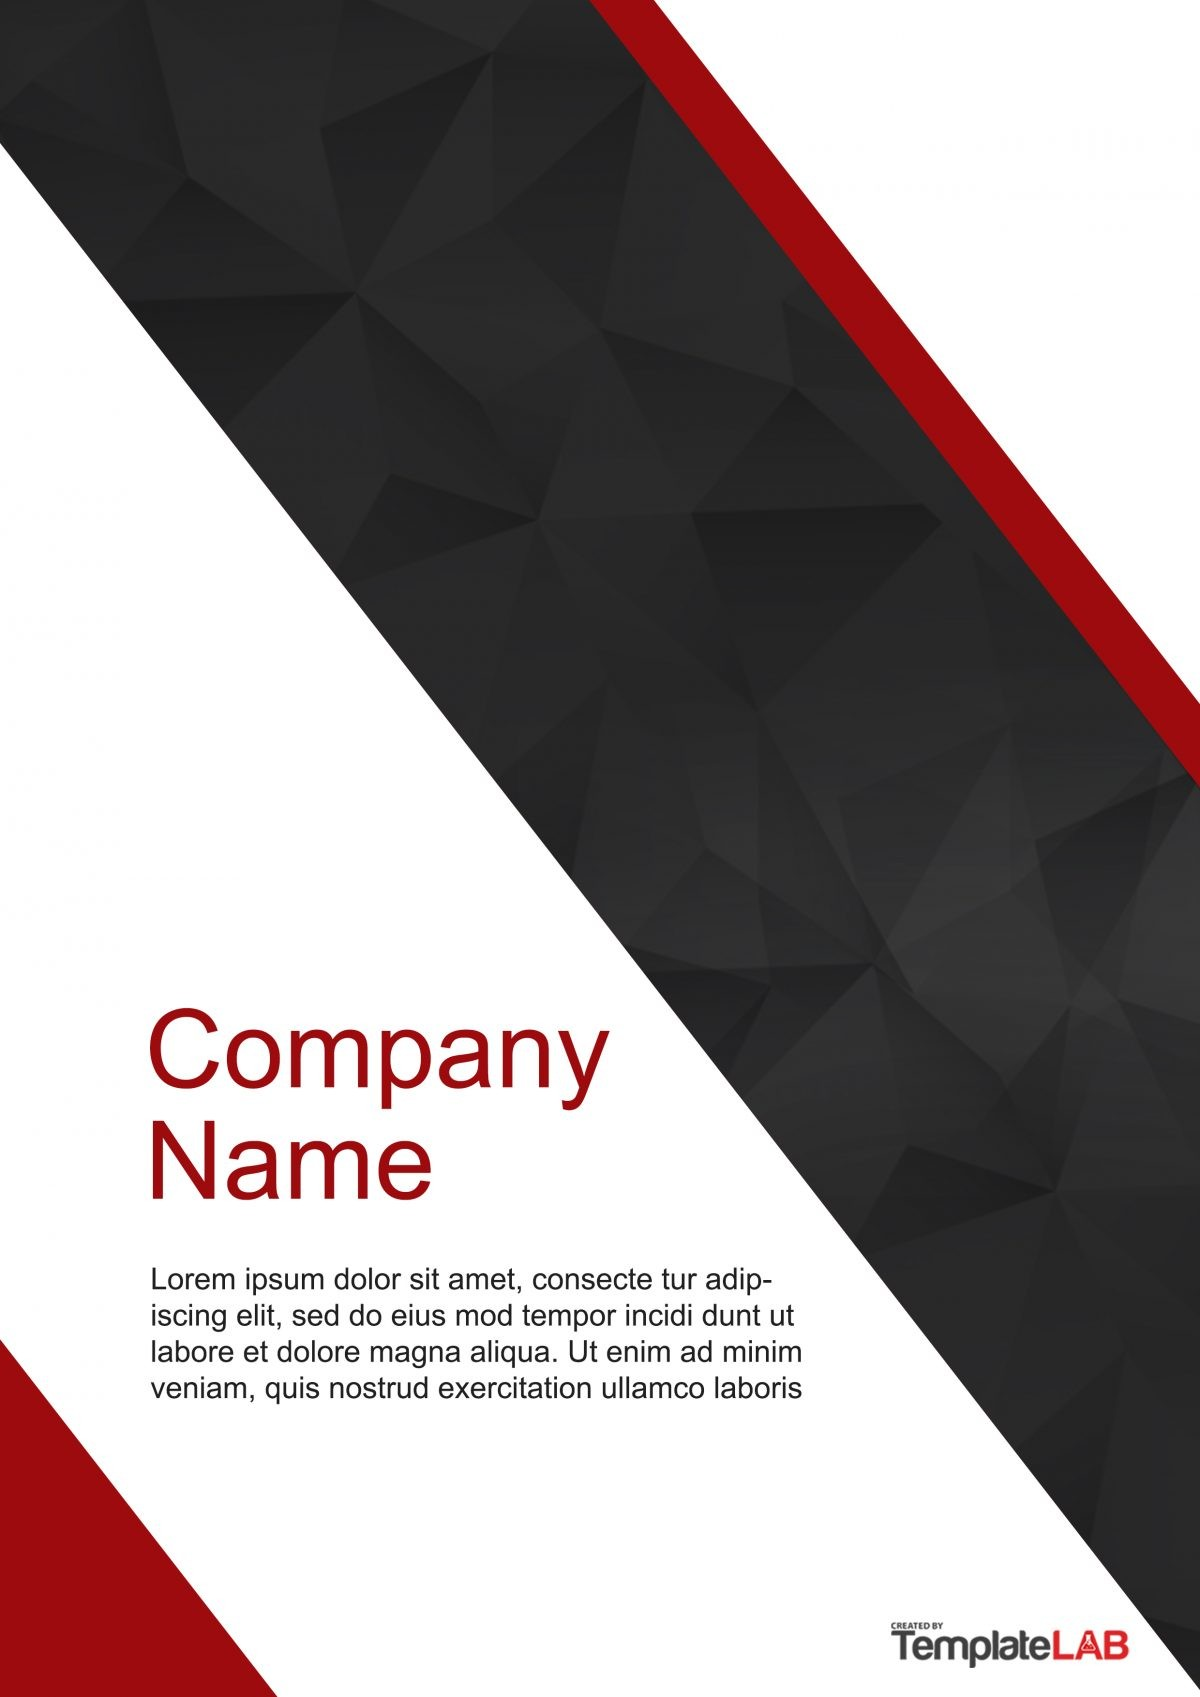 Free Cover Page Template 2 - TemplateLab